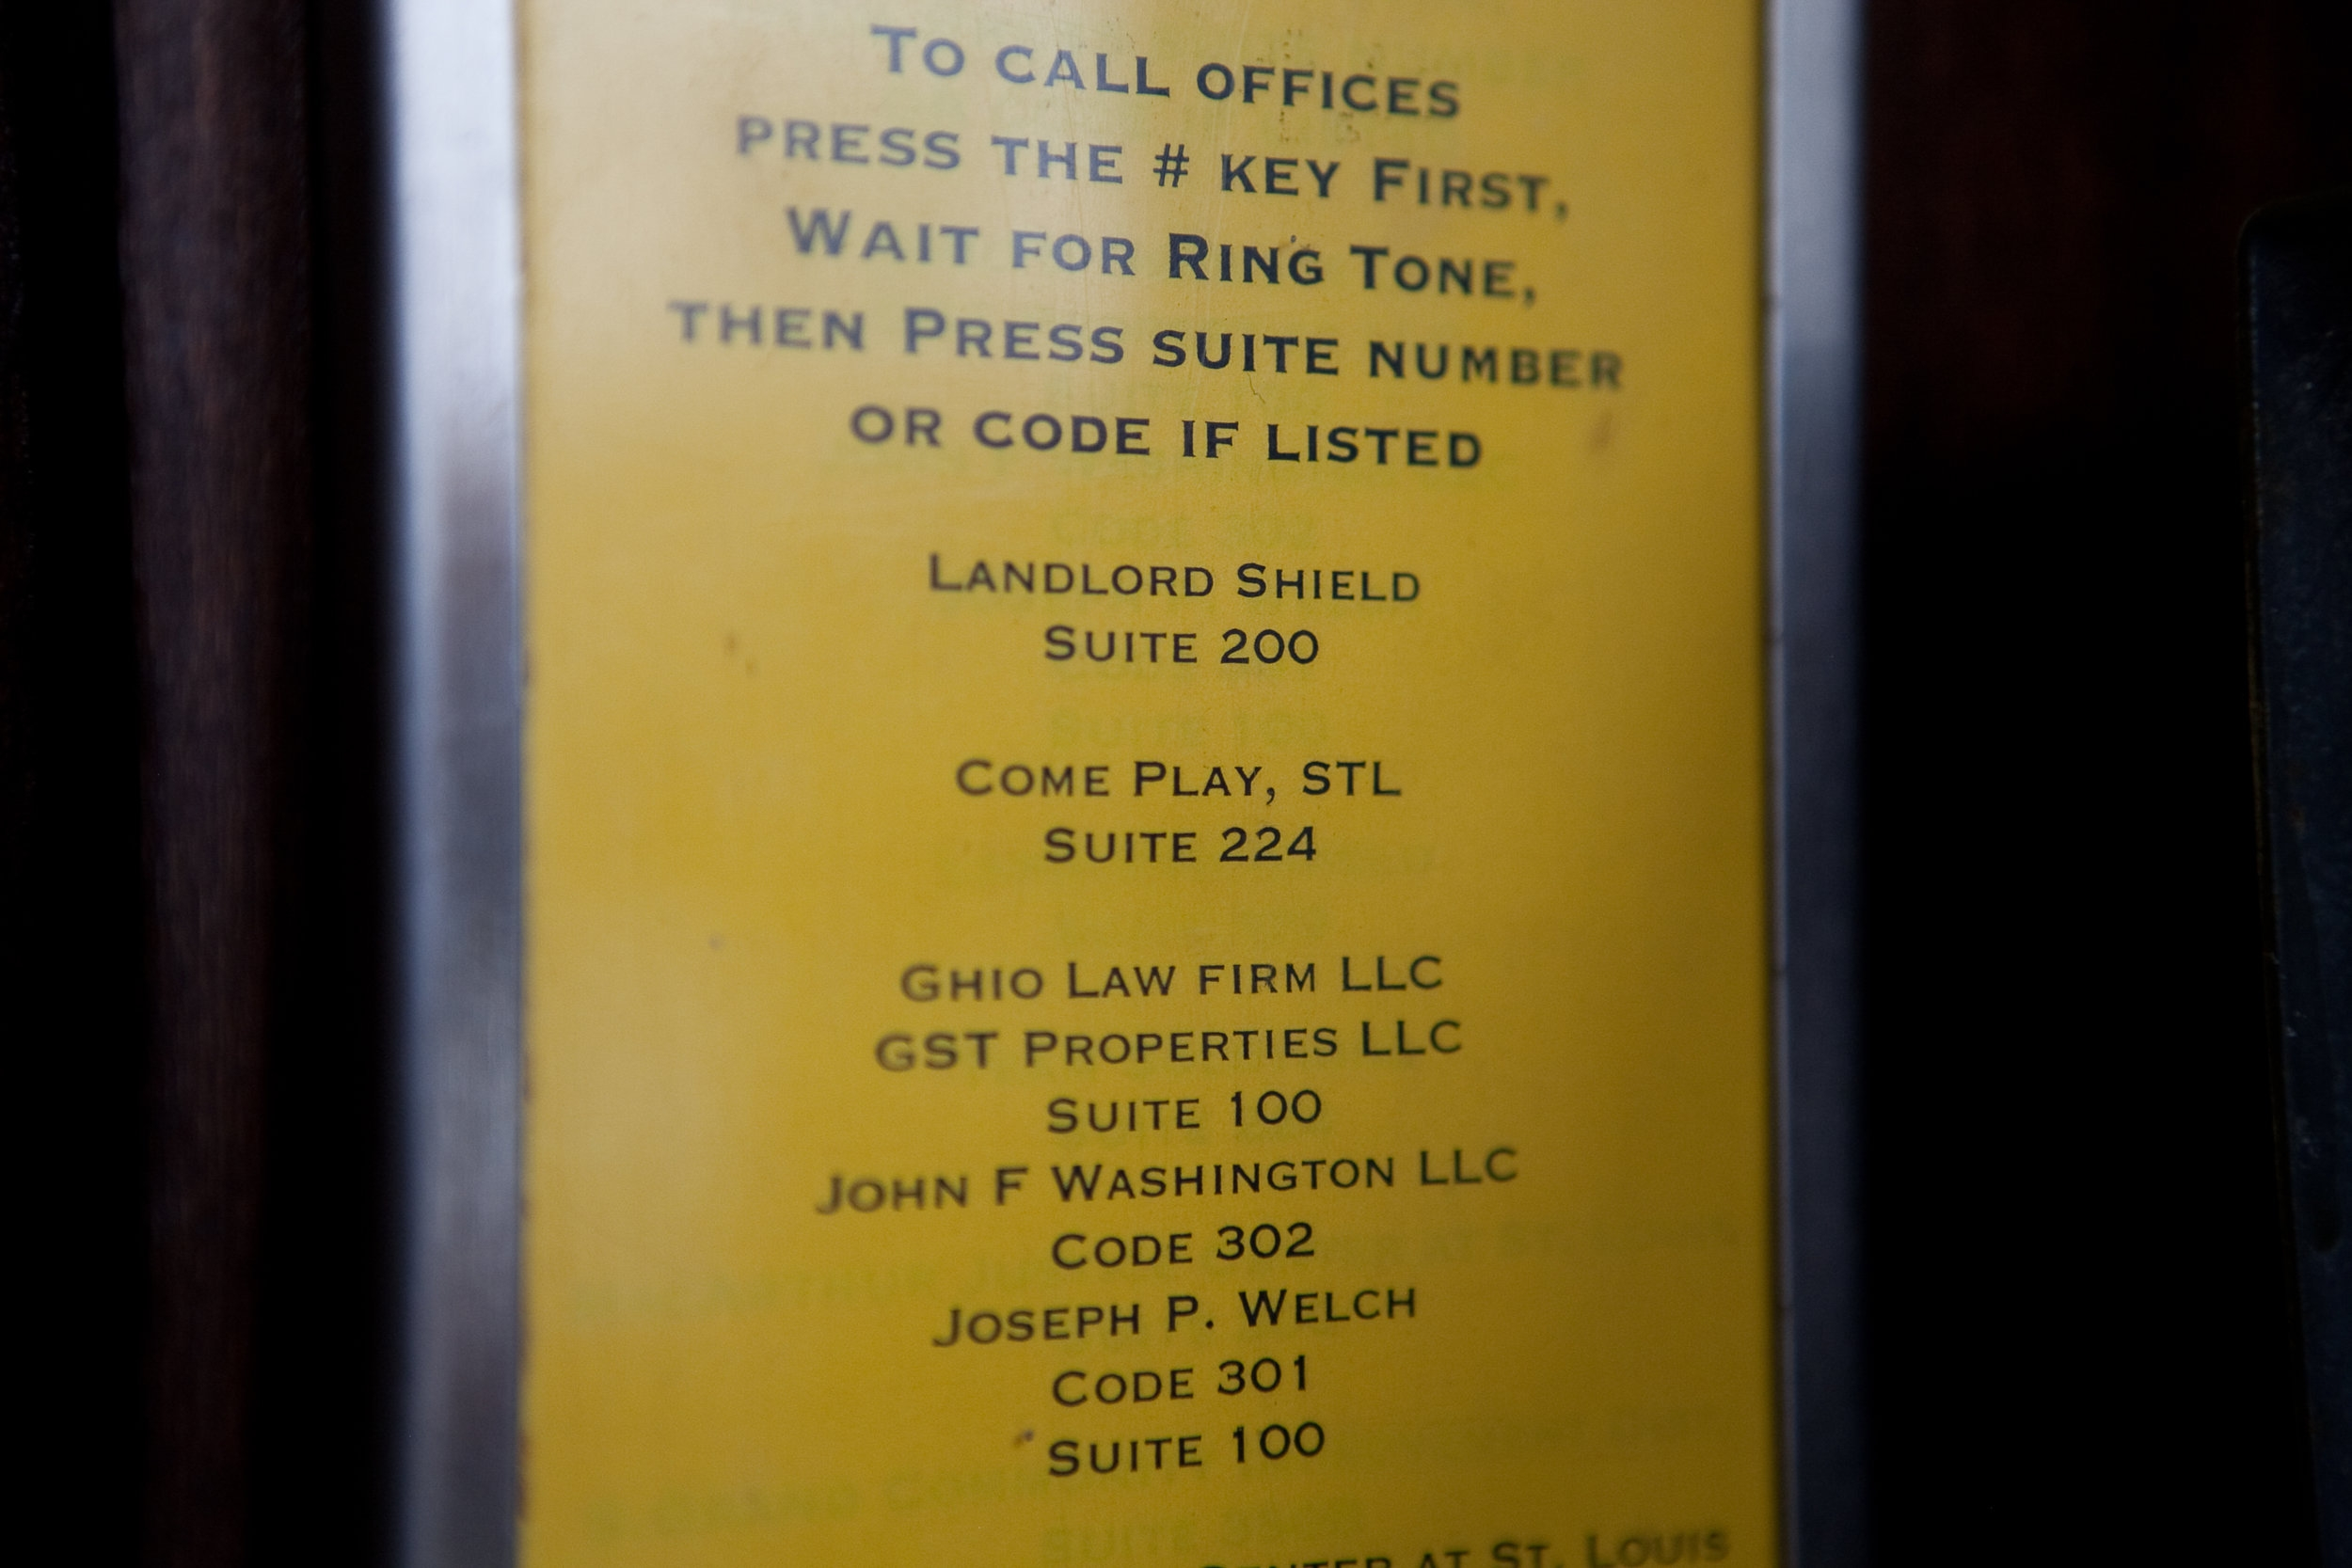 Dial #224 to get buzzed in by Come Play, STL